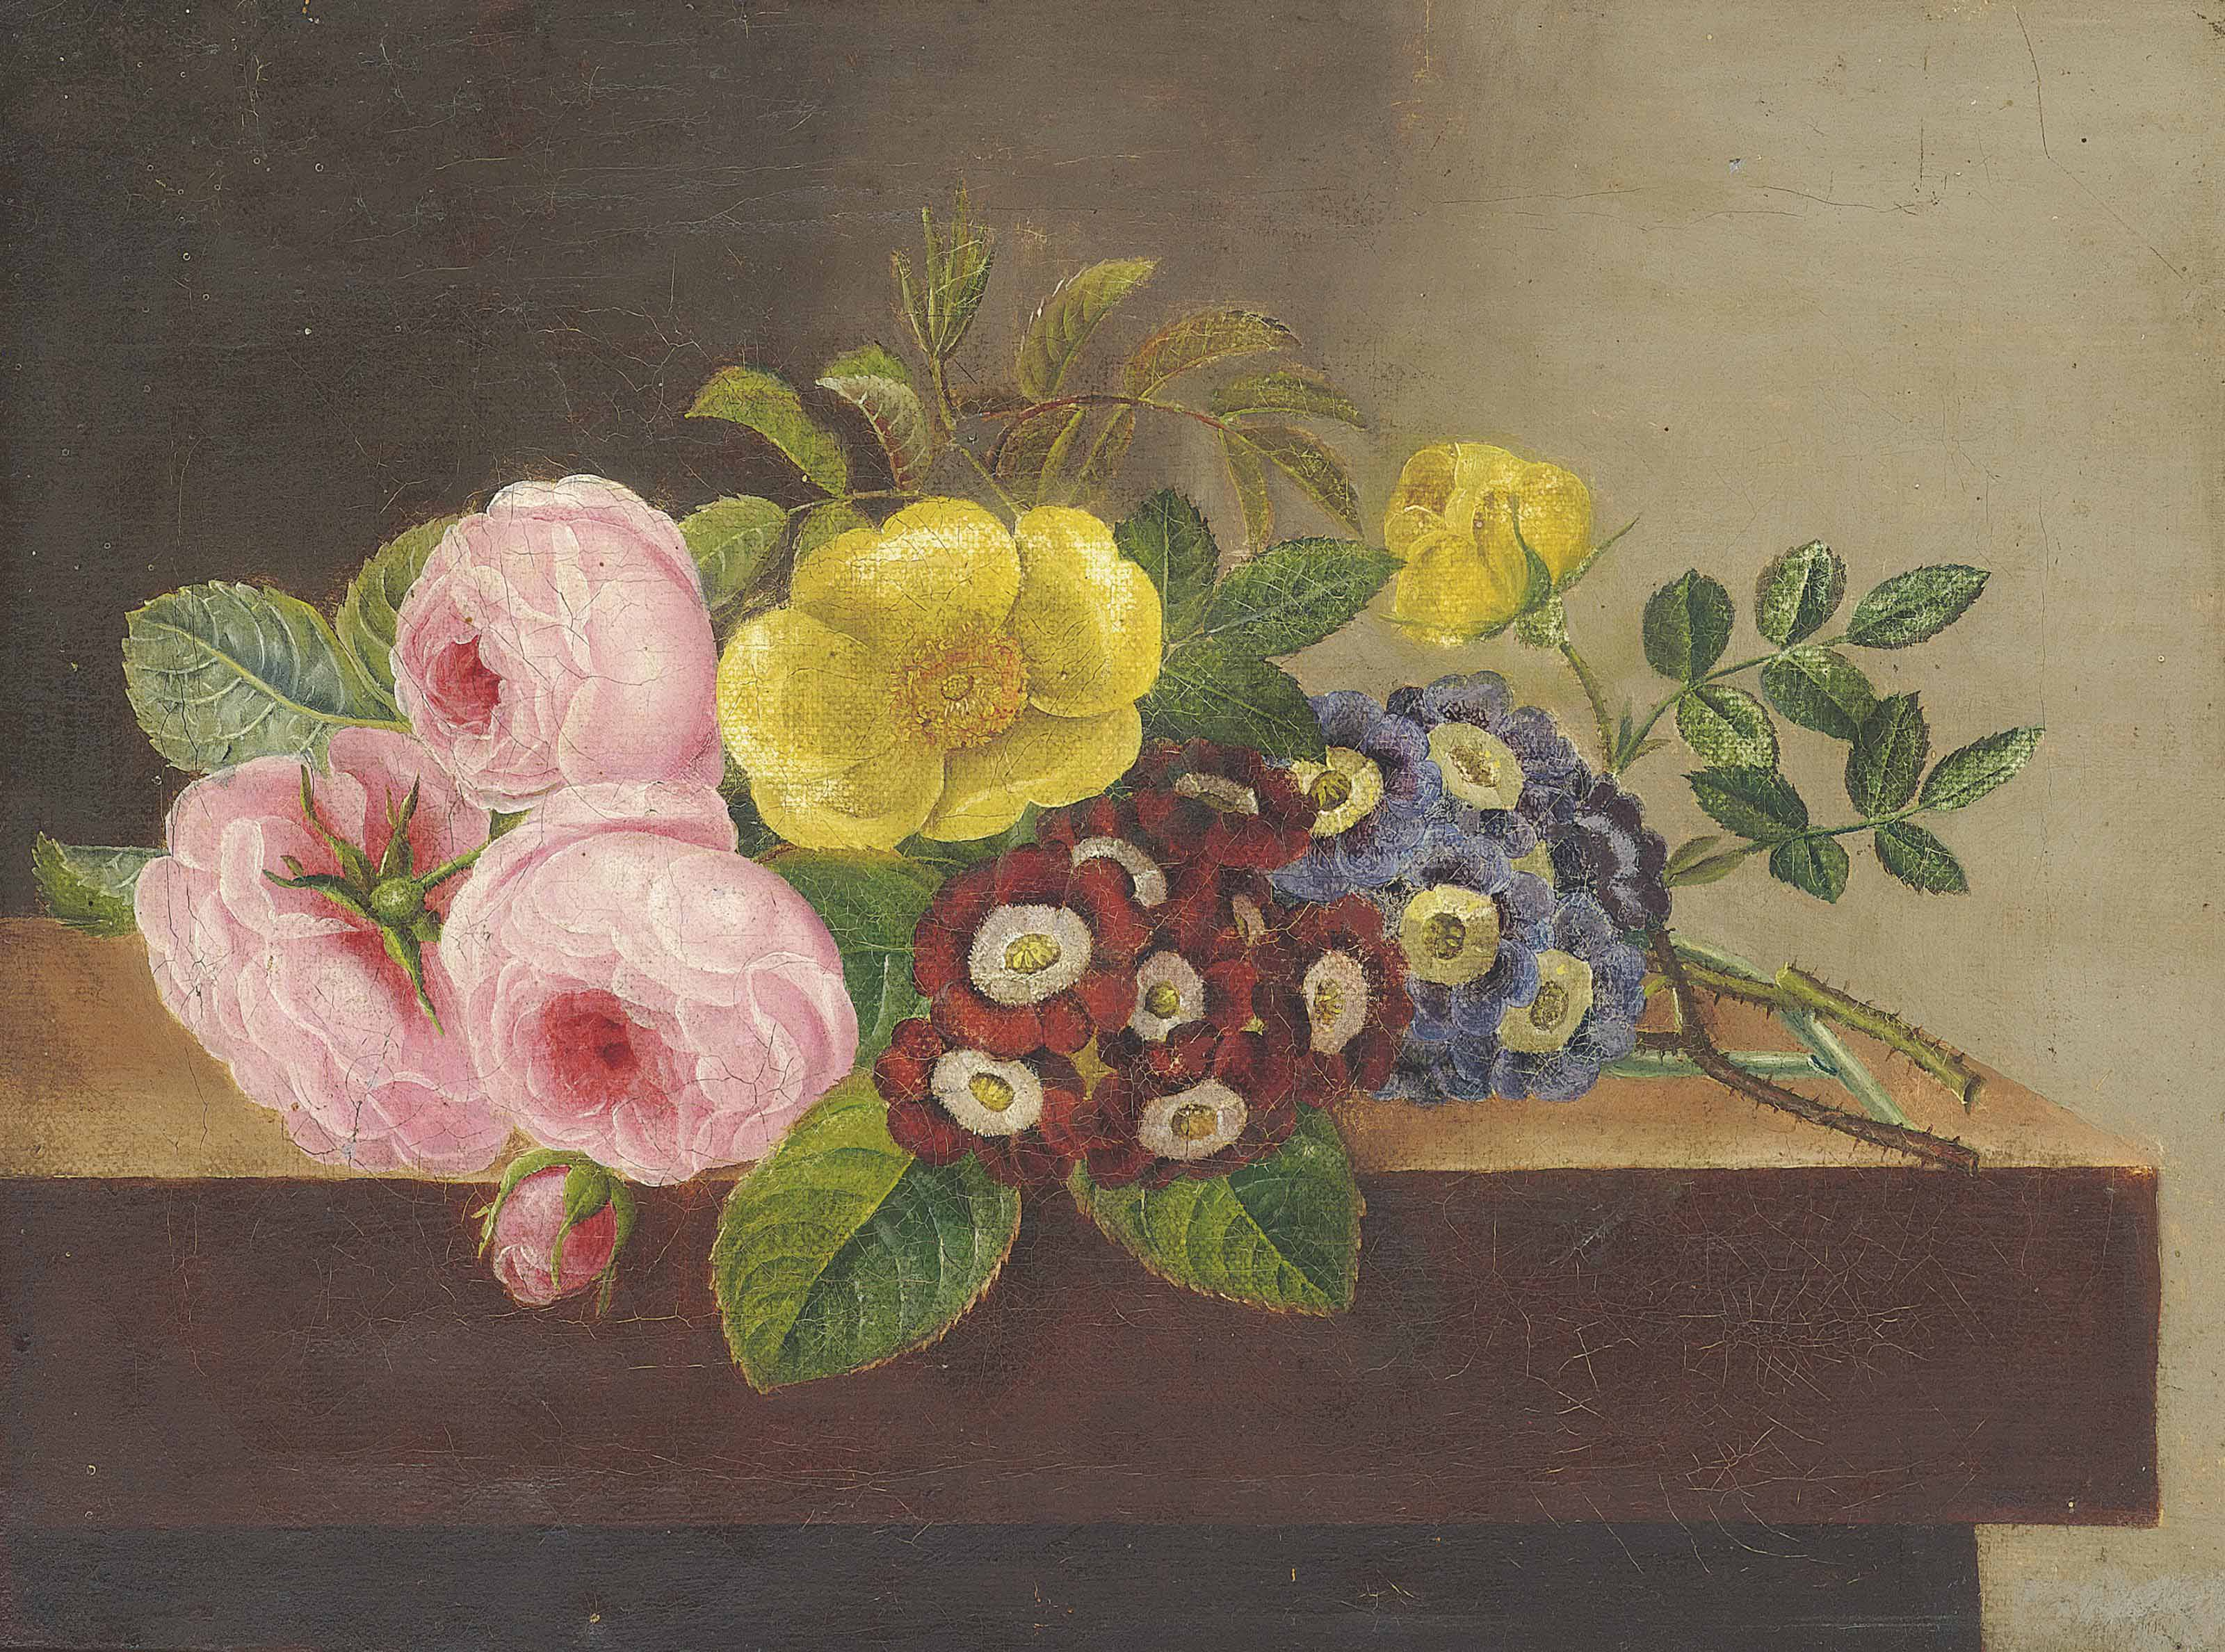 Pink and yellow roses and primroses on a wooden ledge